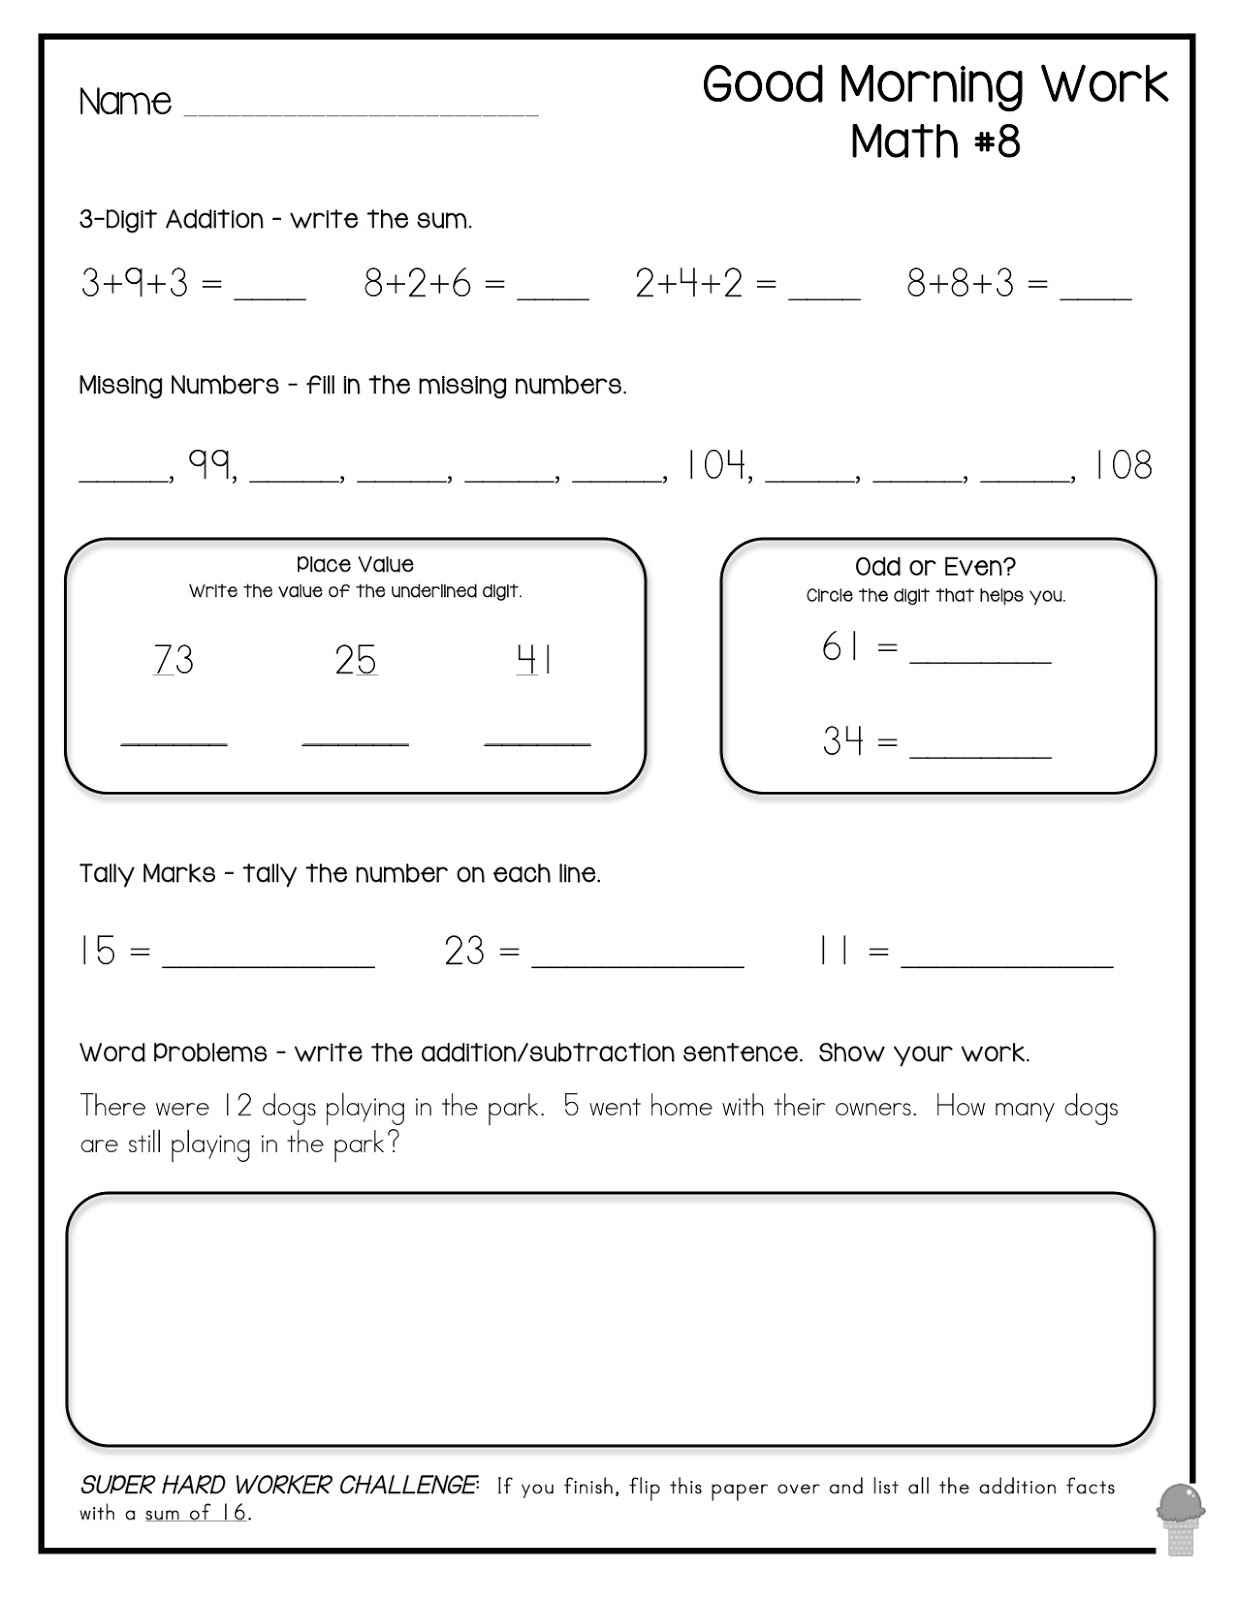 Worksheet 2nd Grade Work Wosenly Free Worksheet – Printable Math Worksheets for 2nd Graders